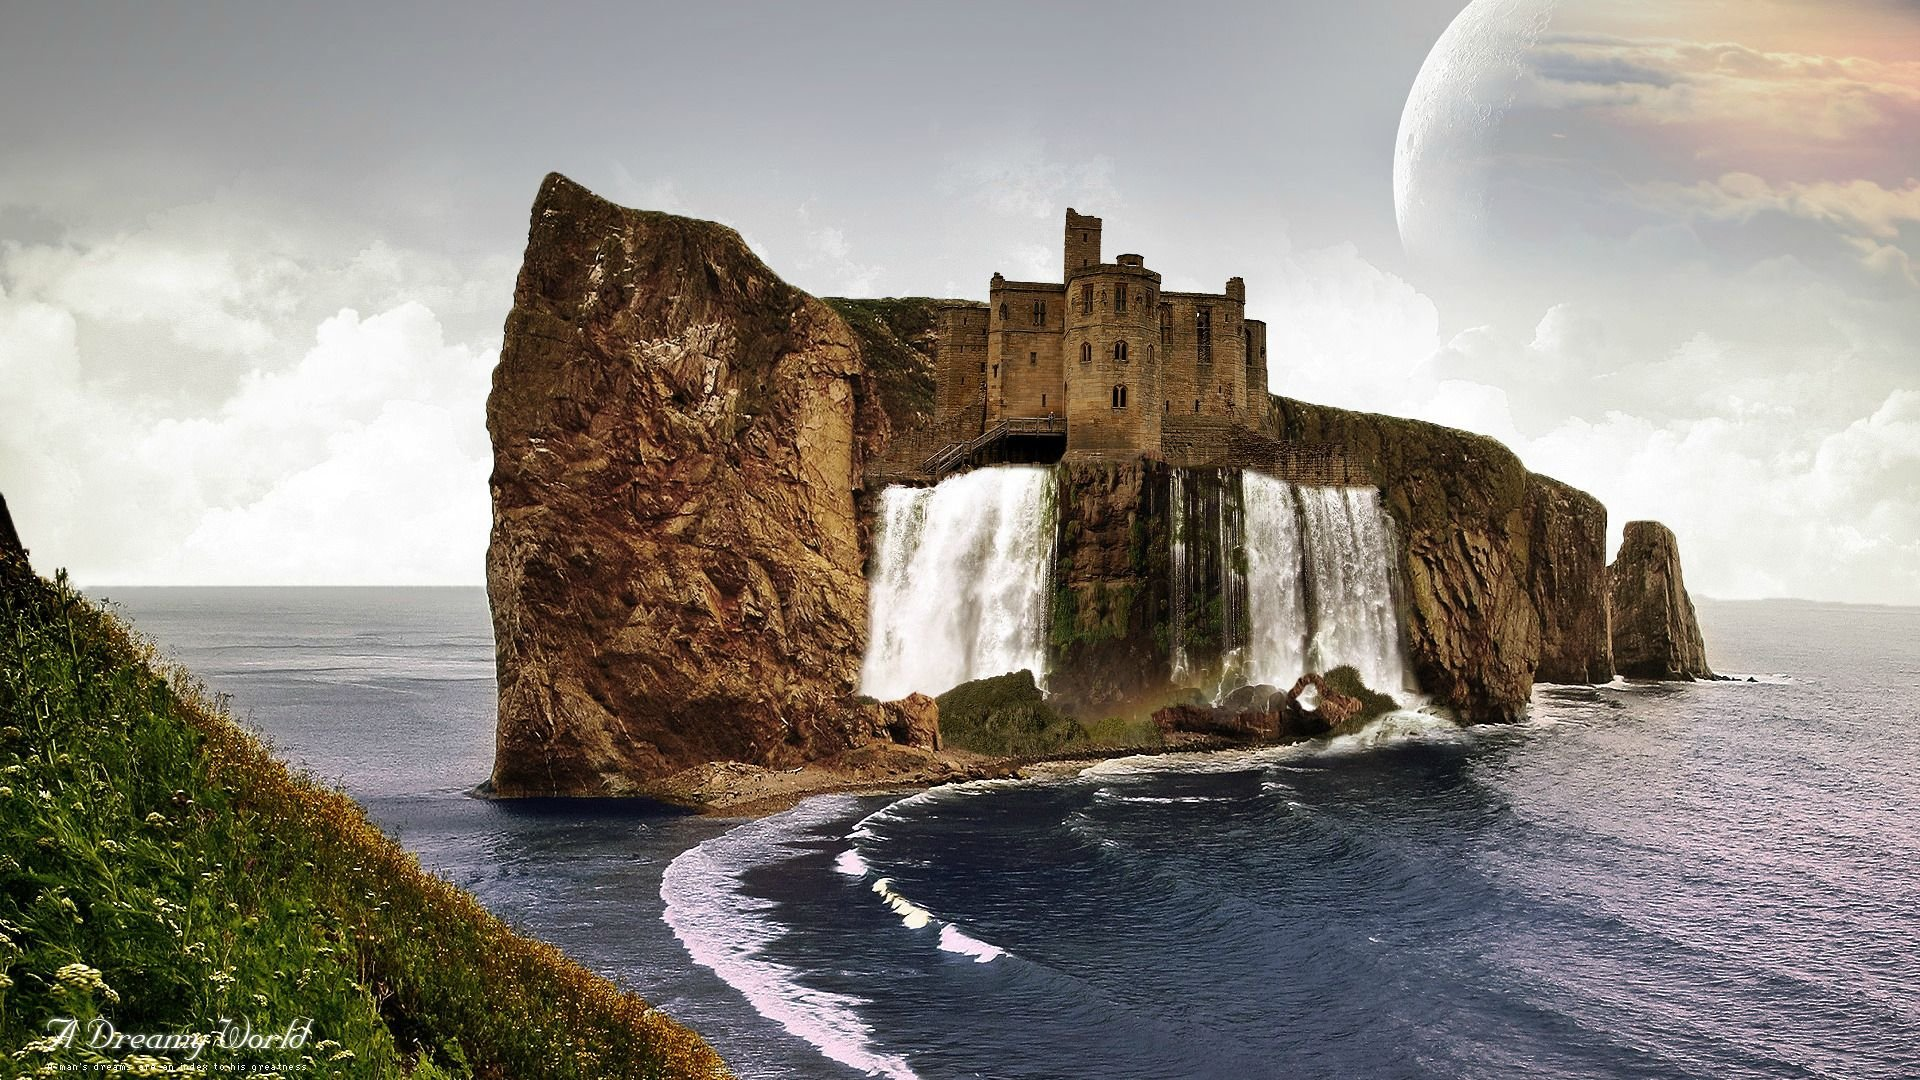 3d Live Wallpaper For Iphone 4s A Wonderful Castle With Wonderful Place To Live Hd Wallpaper